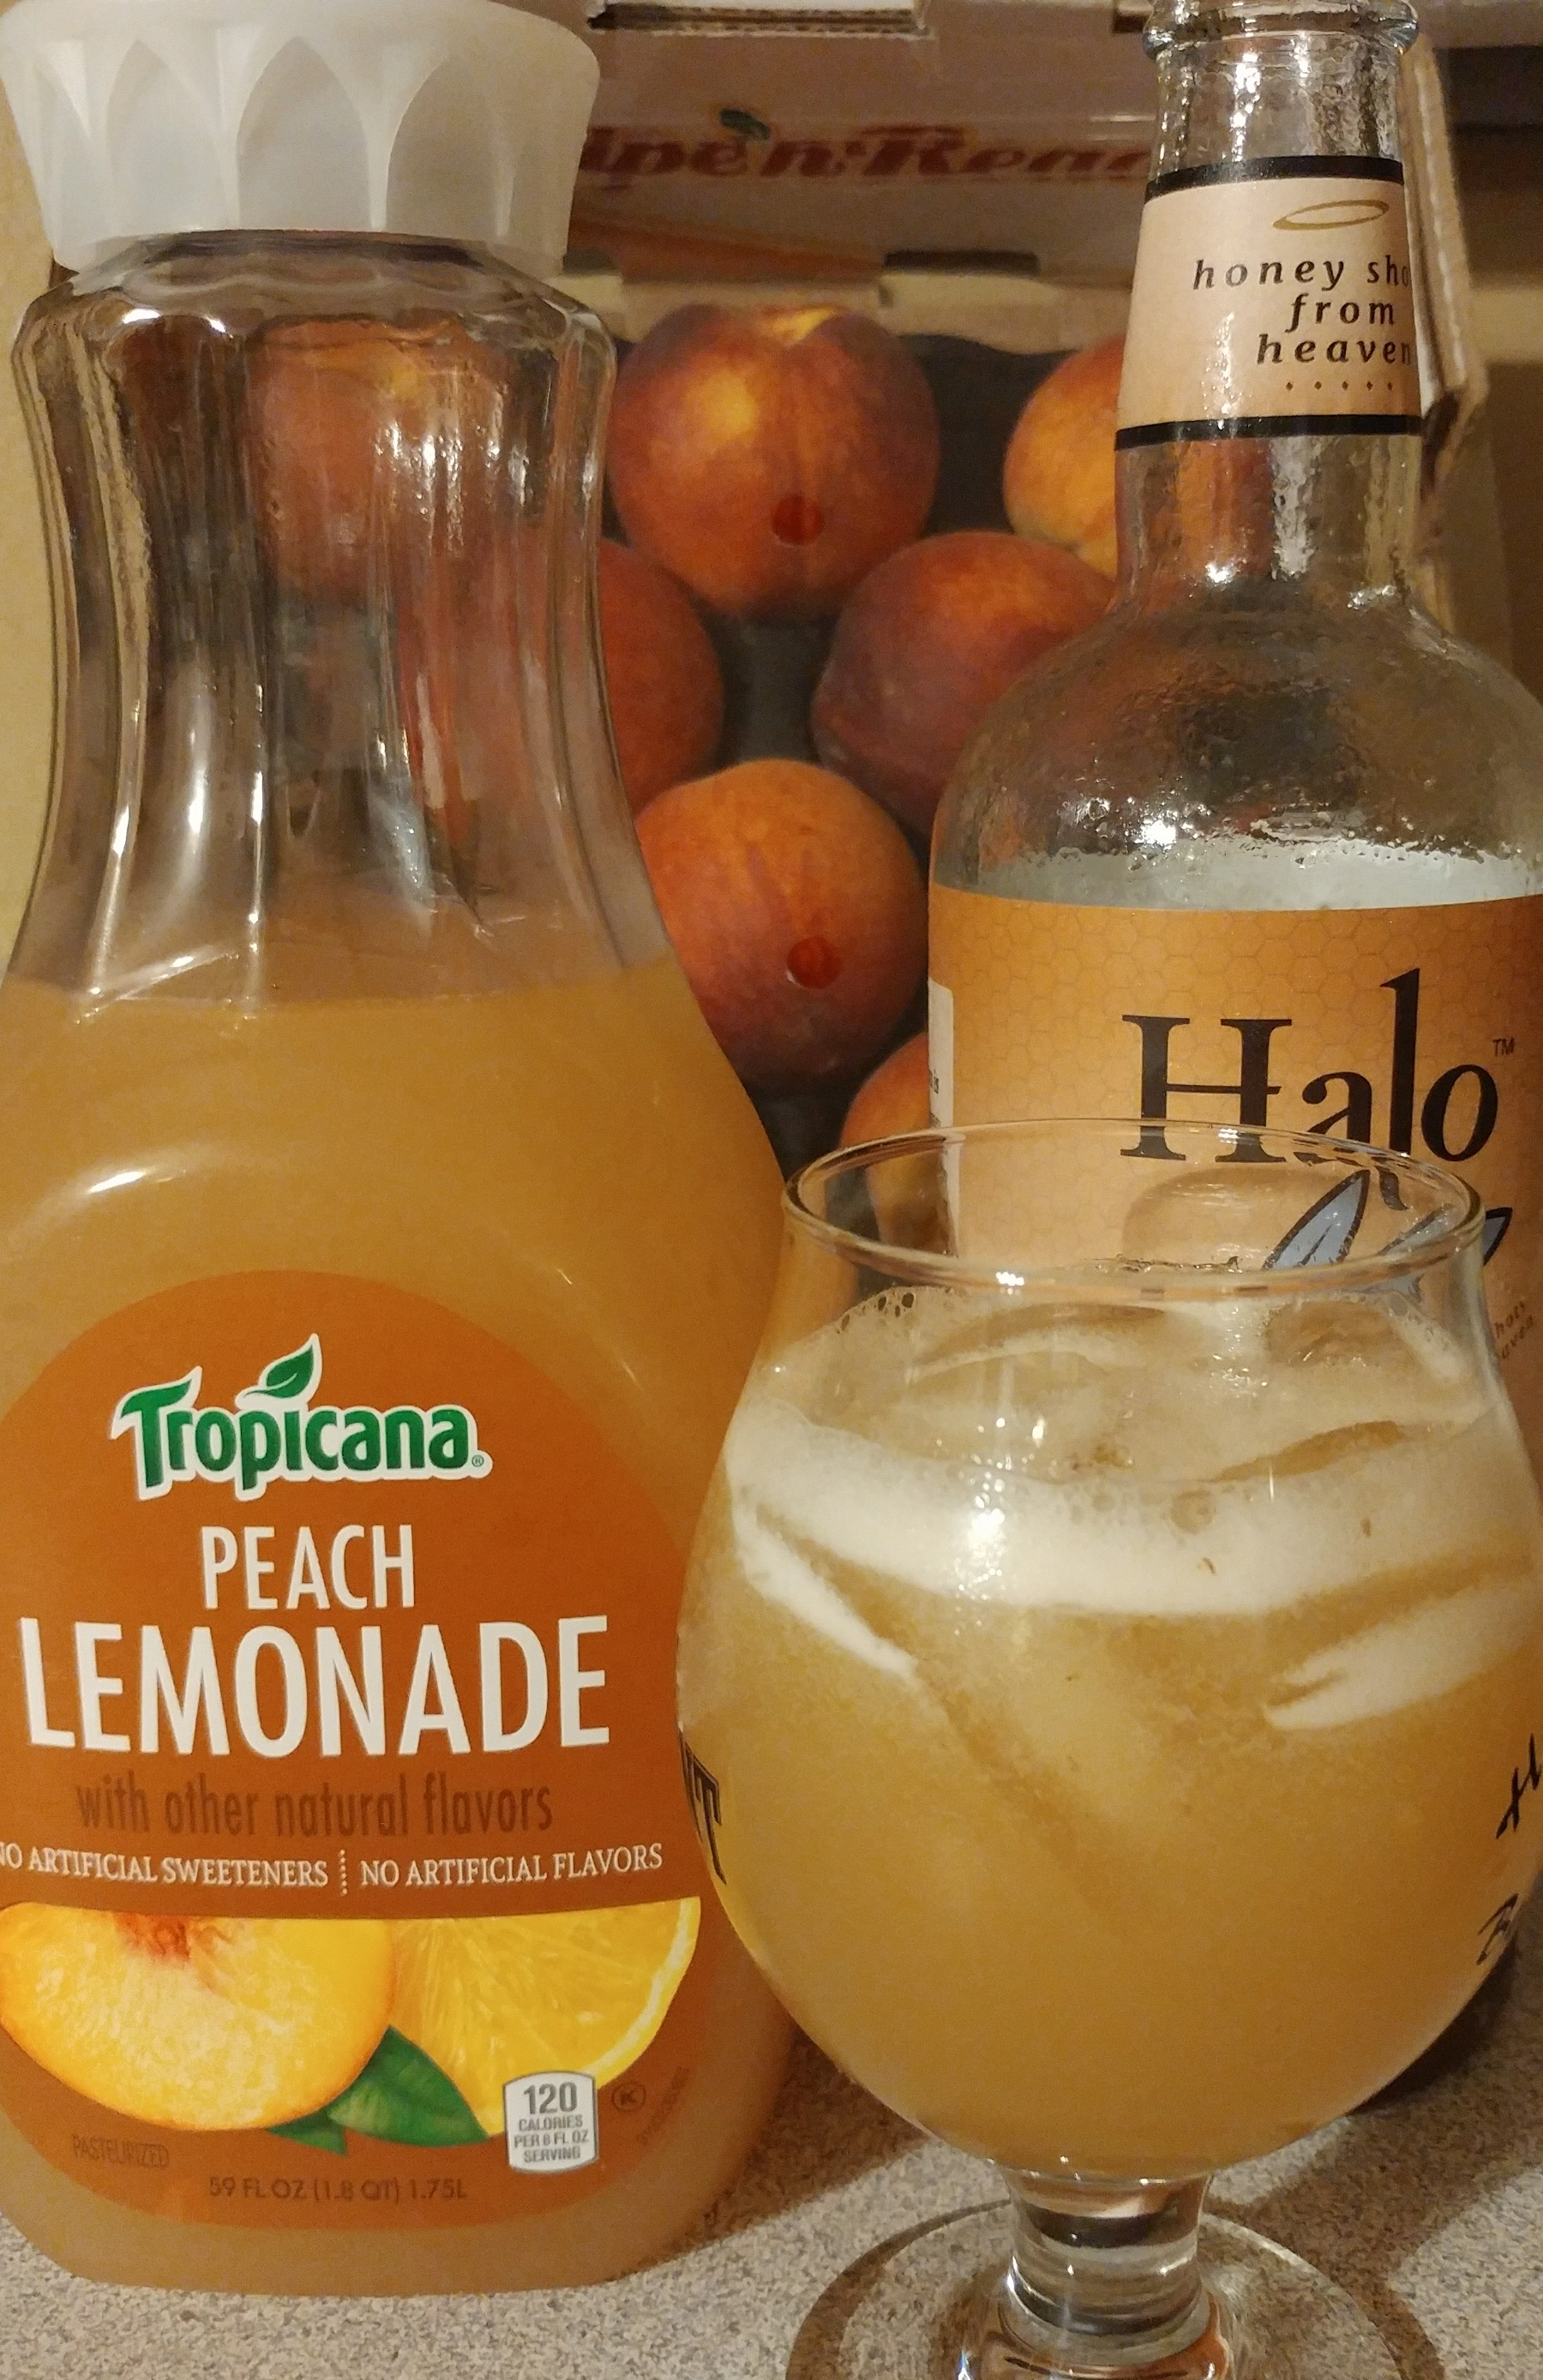 Halo Spiked Peach Lemonade